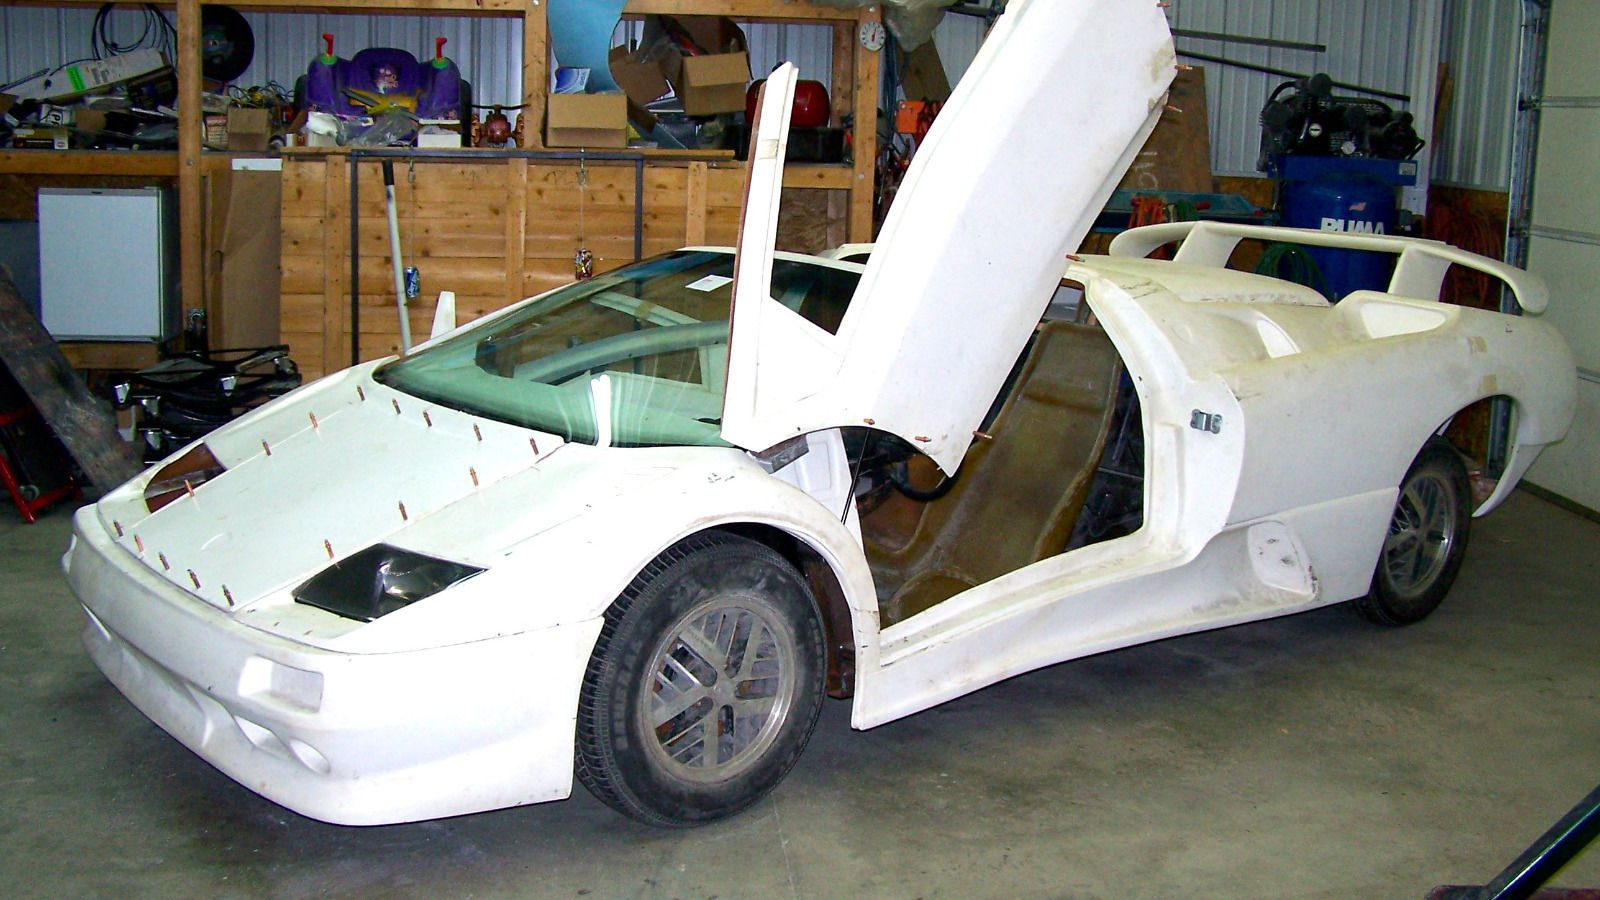 1987 Lamborghini Diablo Roadster Replica Kit Car For Sale Lamborghini Diablo Kit Cars Lamborghini